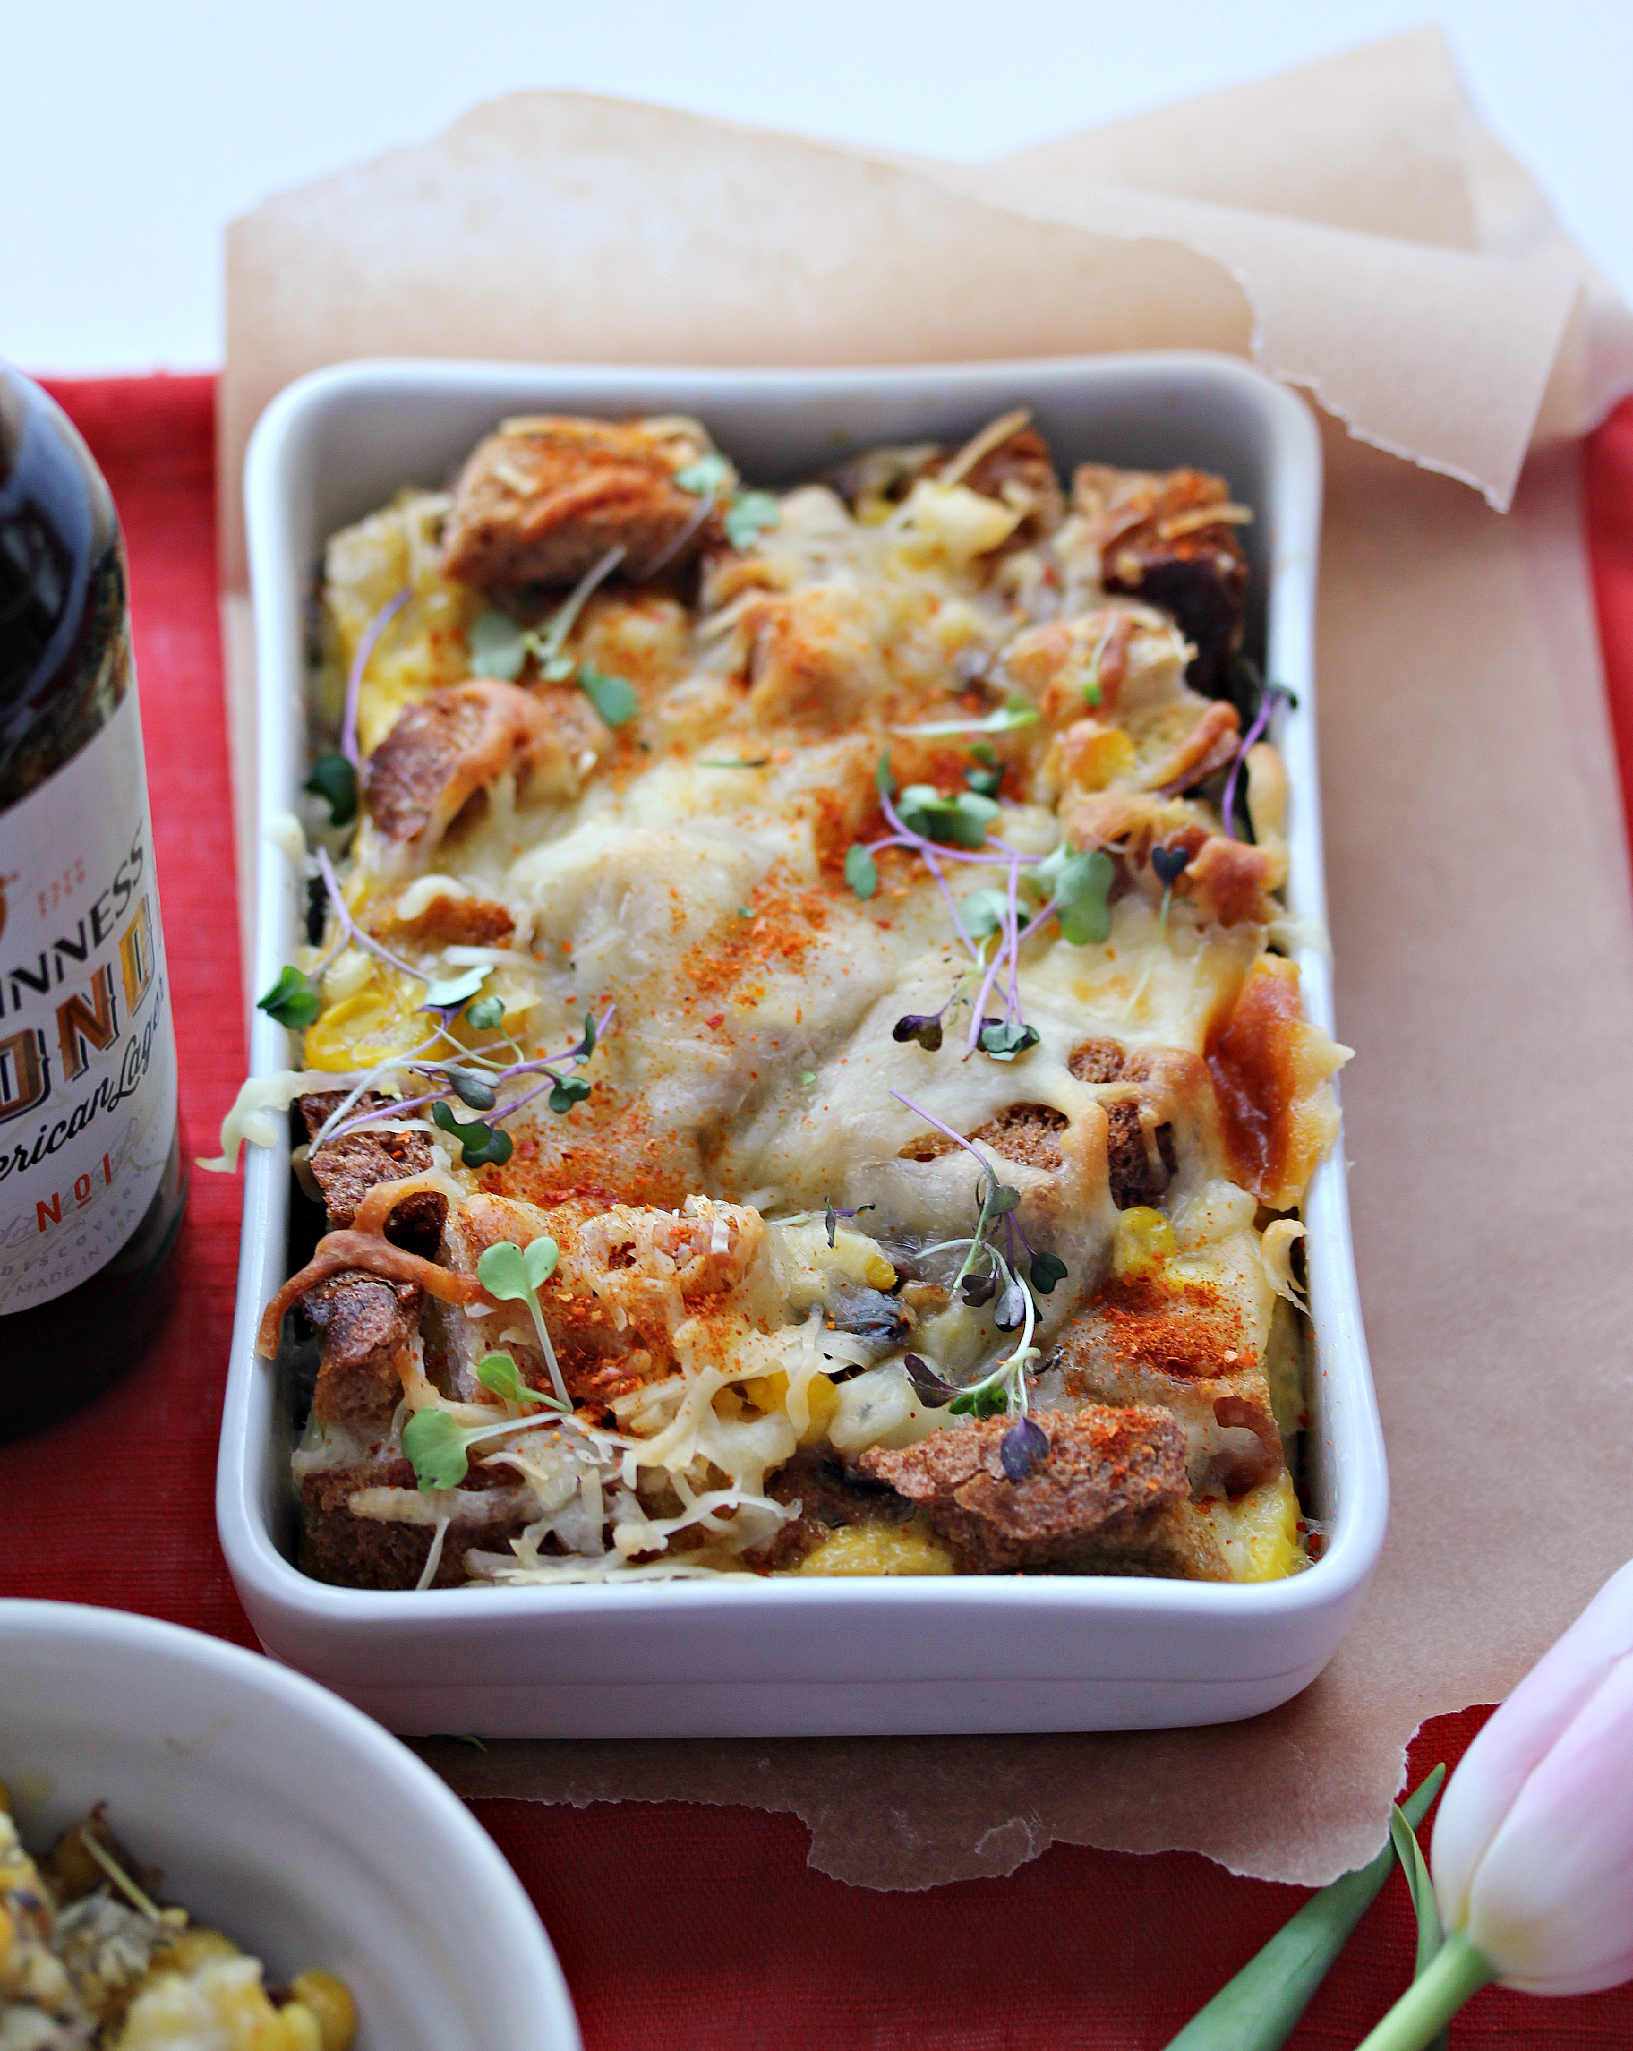 © Savory Bread Pudding in Casserole Dish by Dena T Bray